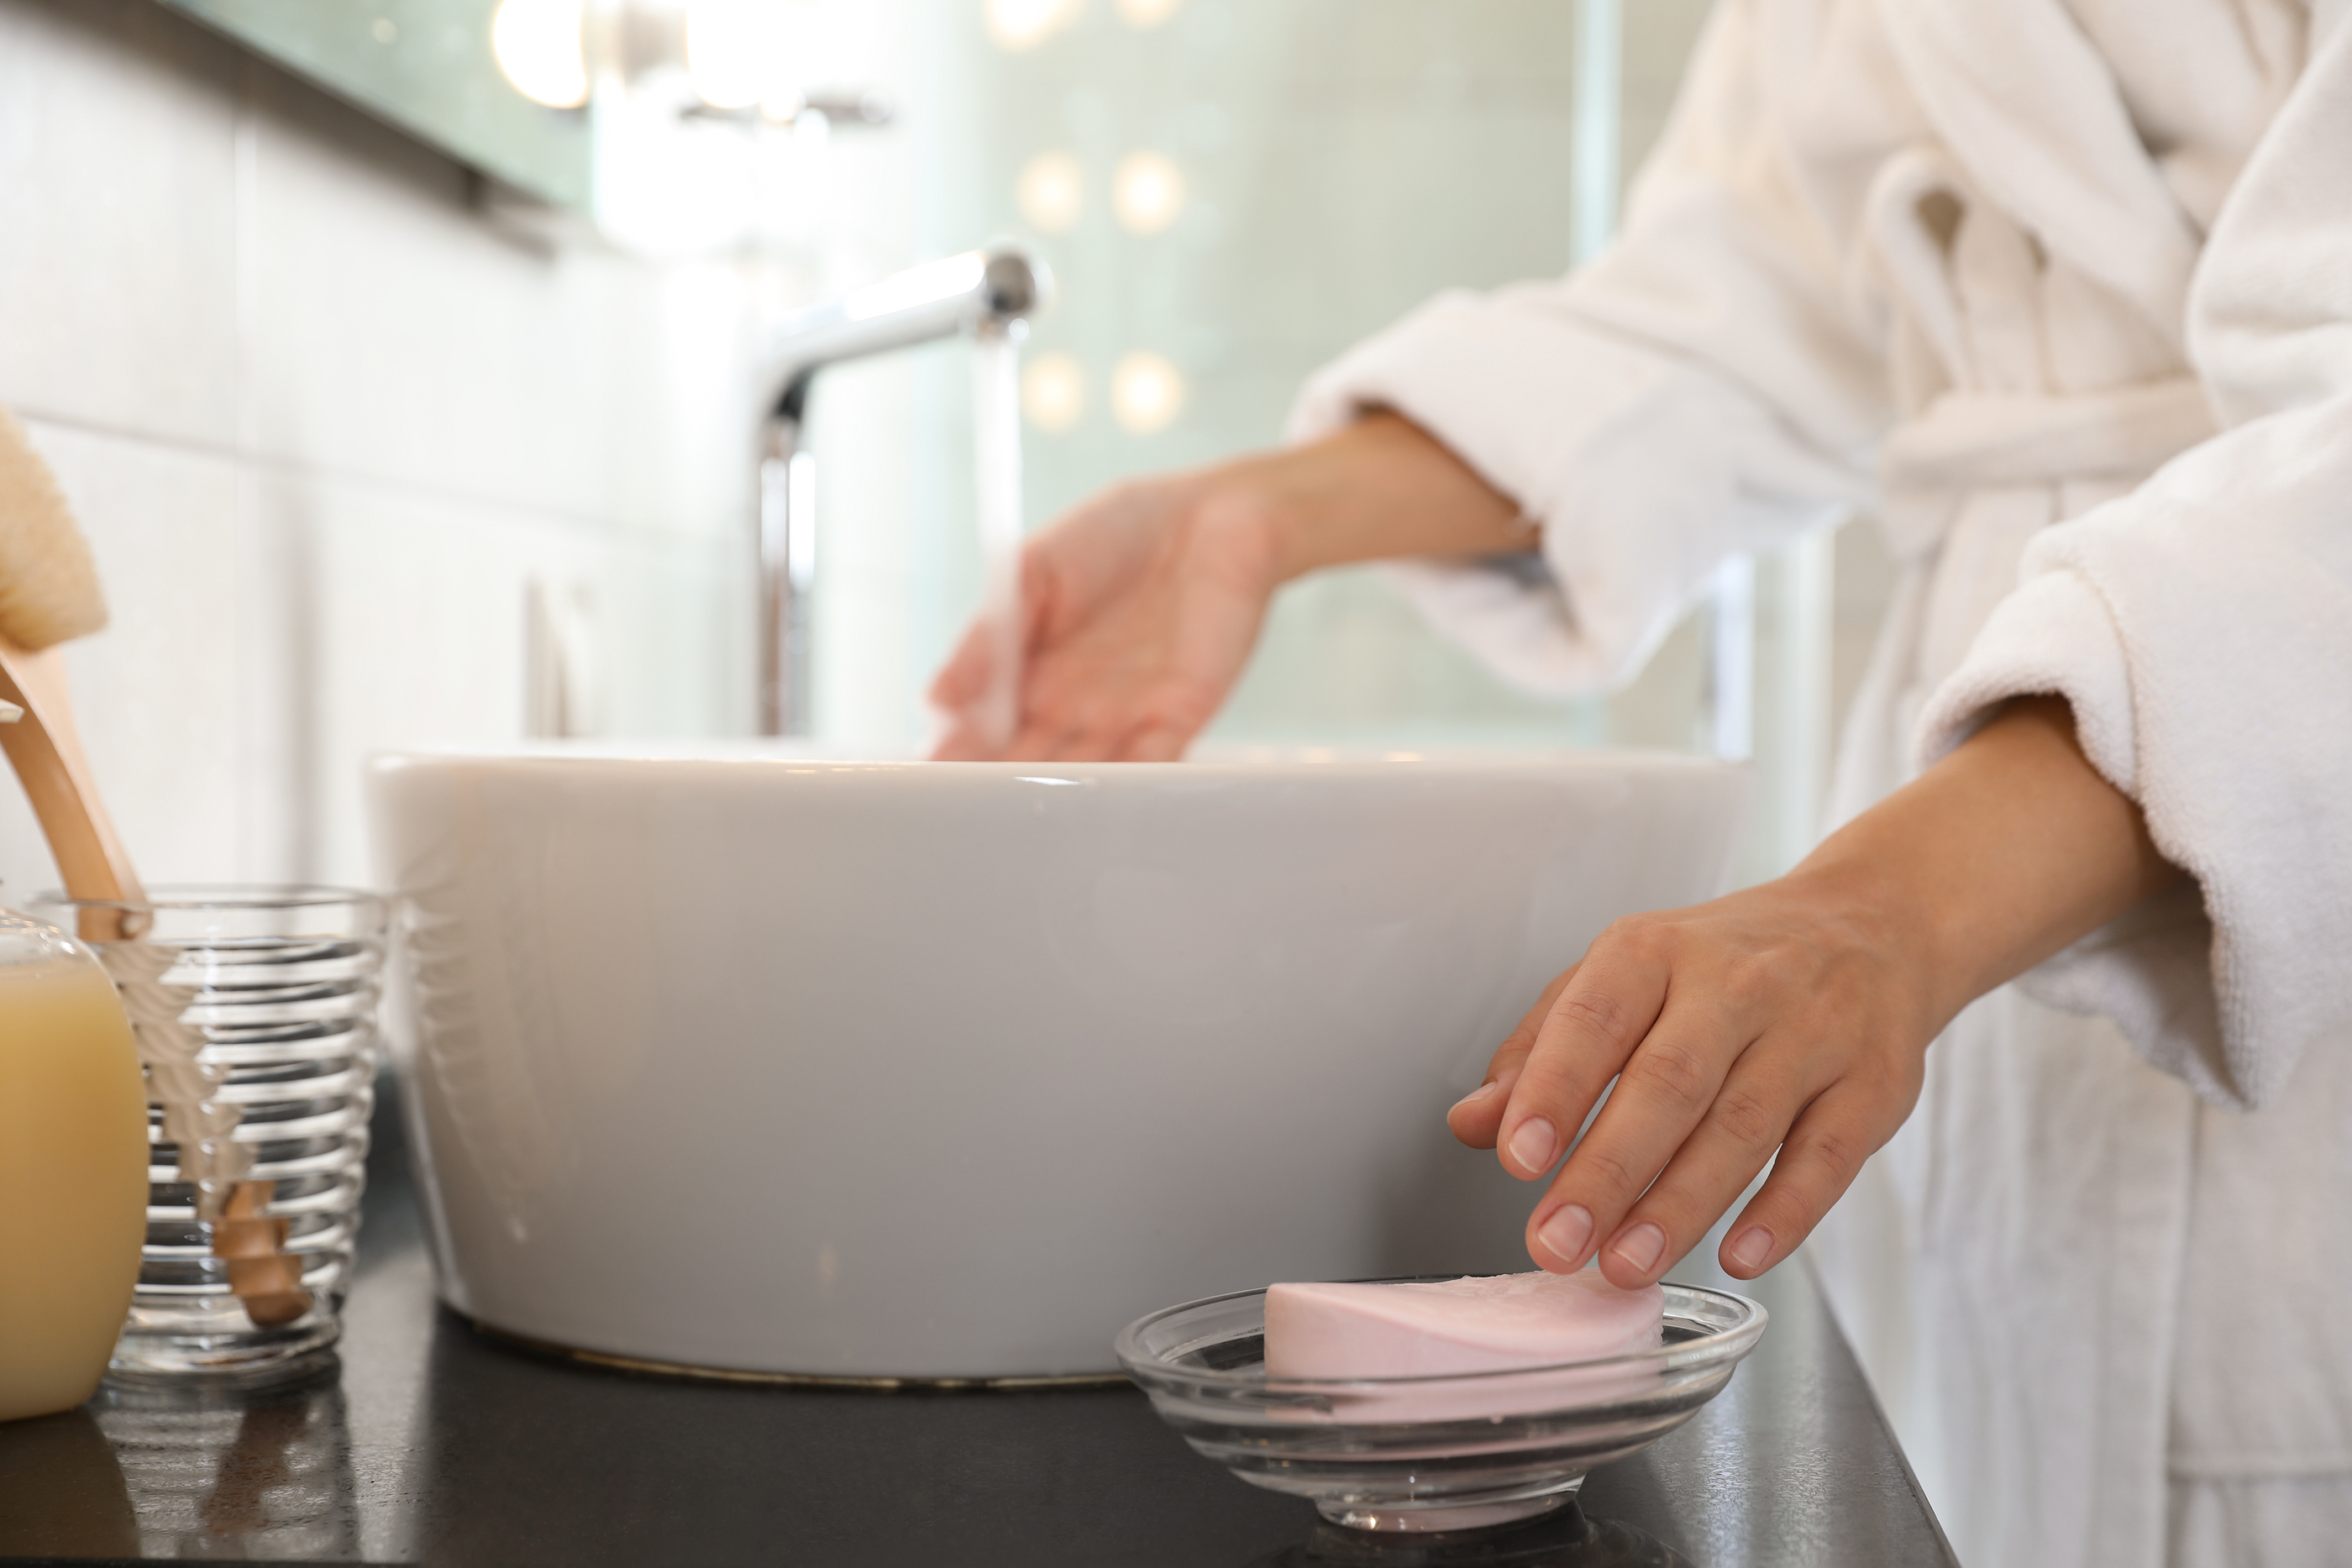 washing hands with bar soap